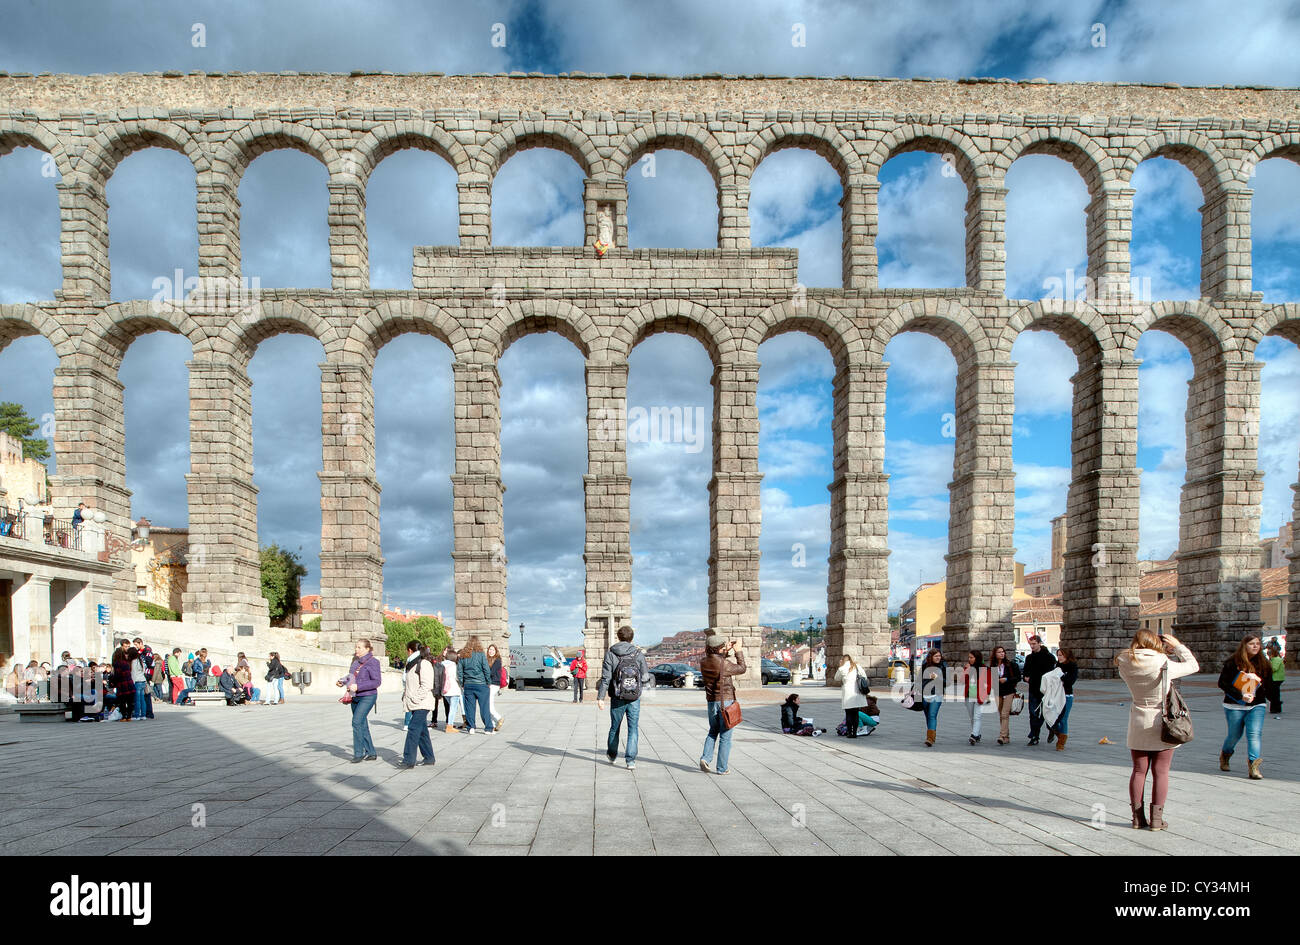 The great Roman aqueduct in Segovia, northern Spain, one of the best-preserved ancient monuments left on the Iberian - Stock Image